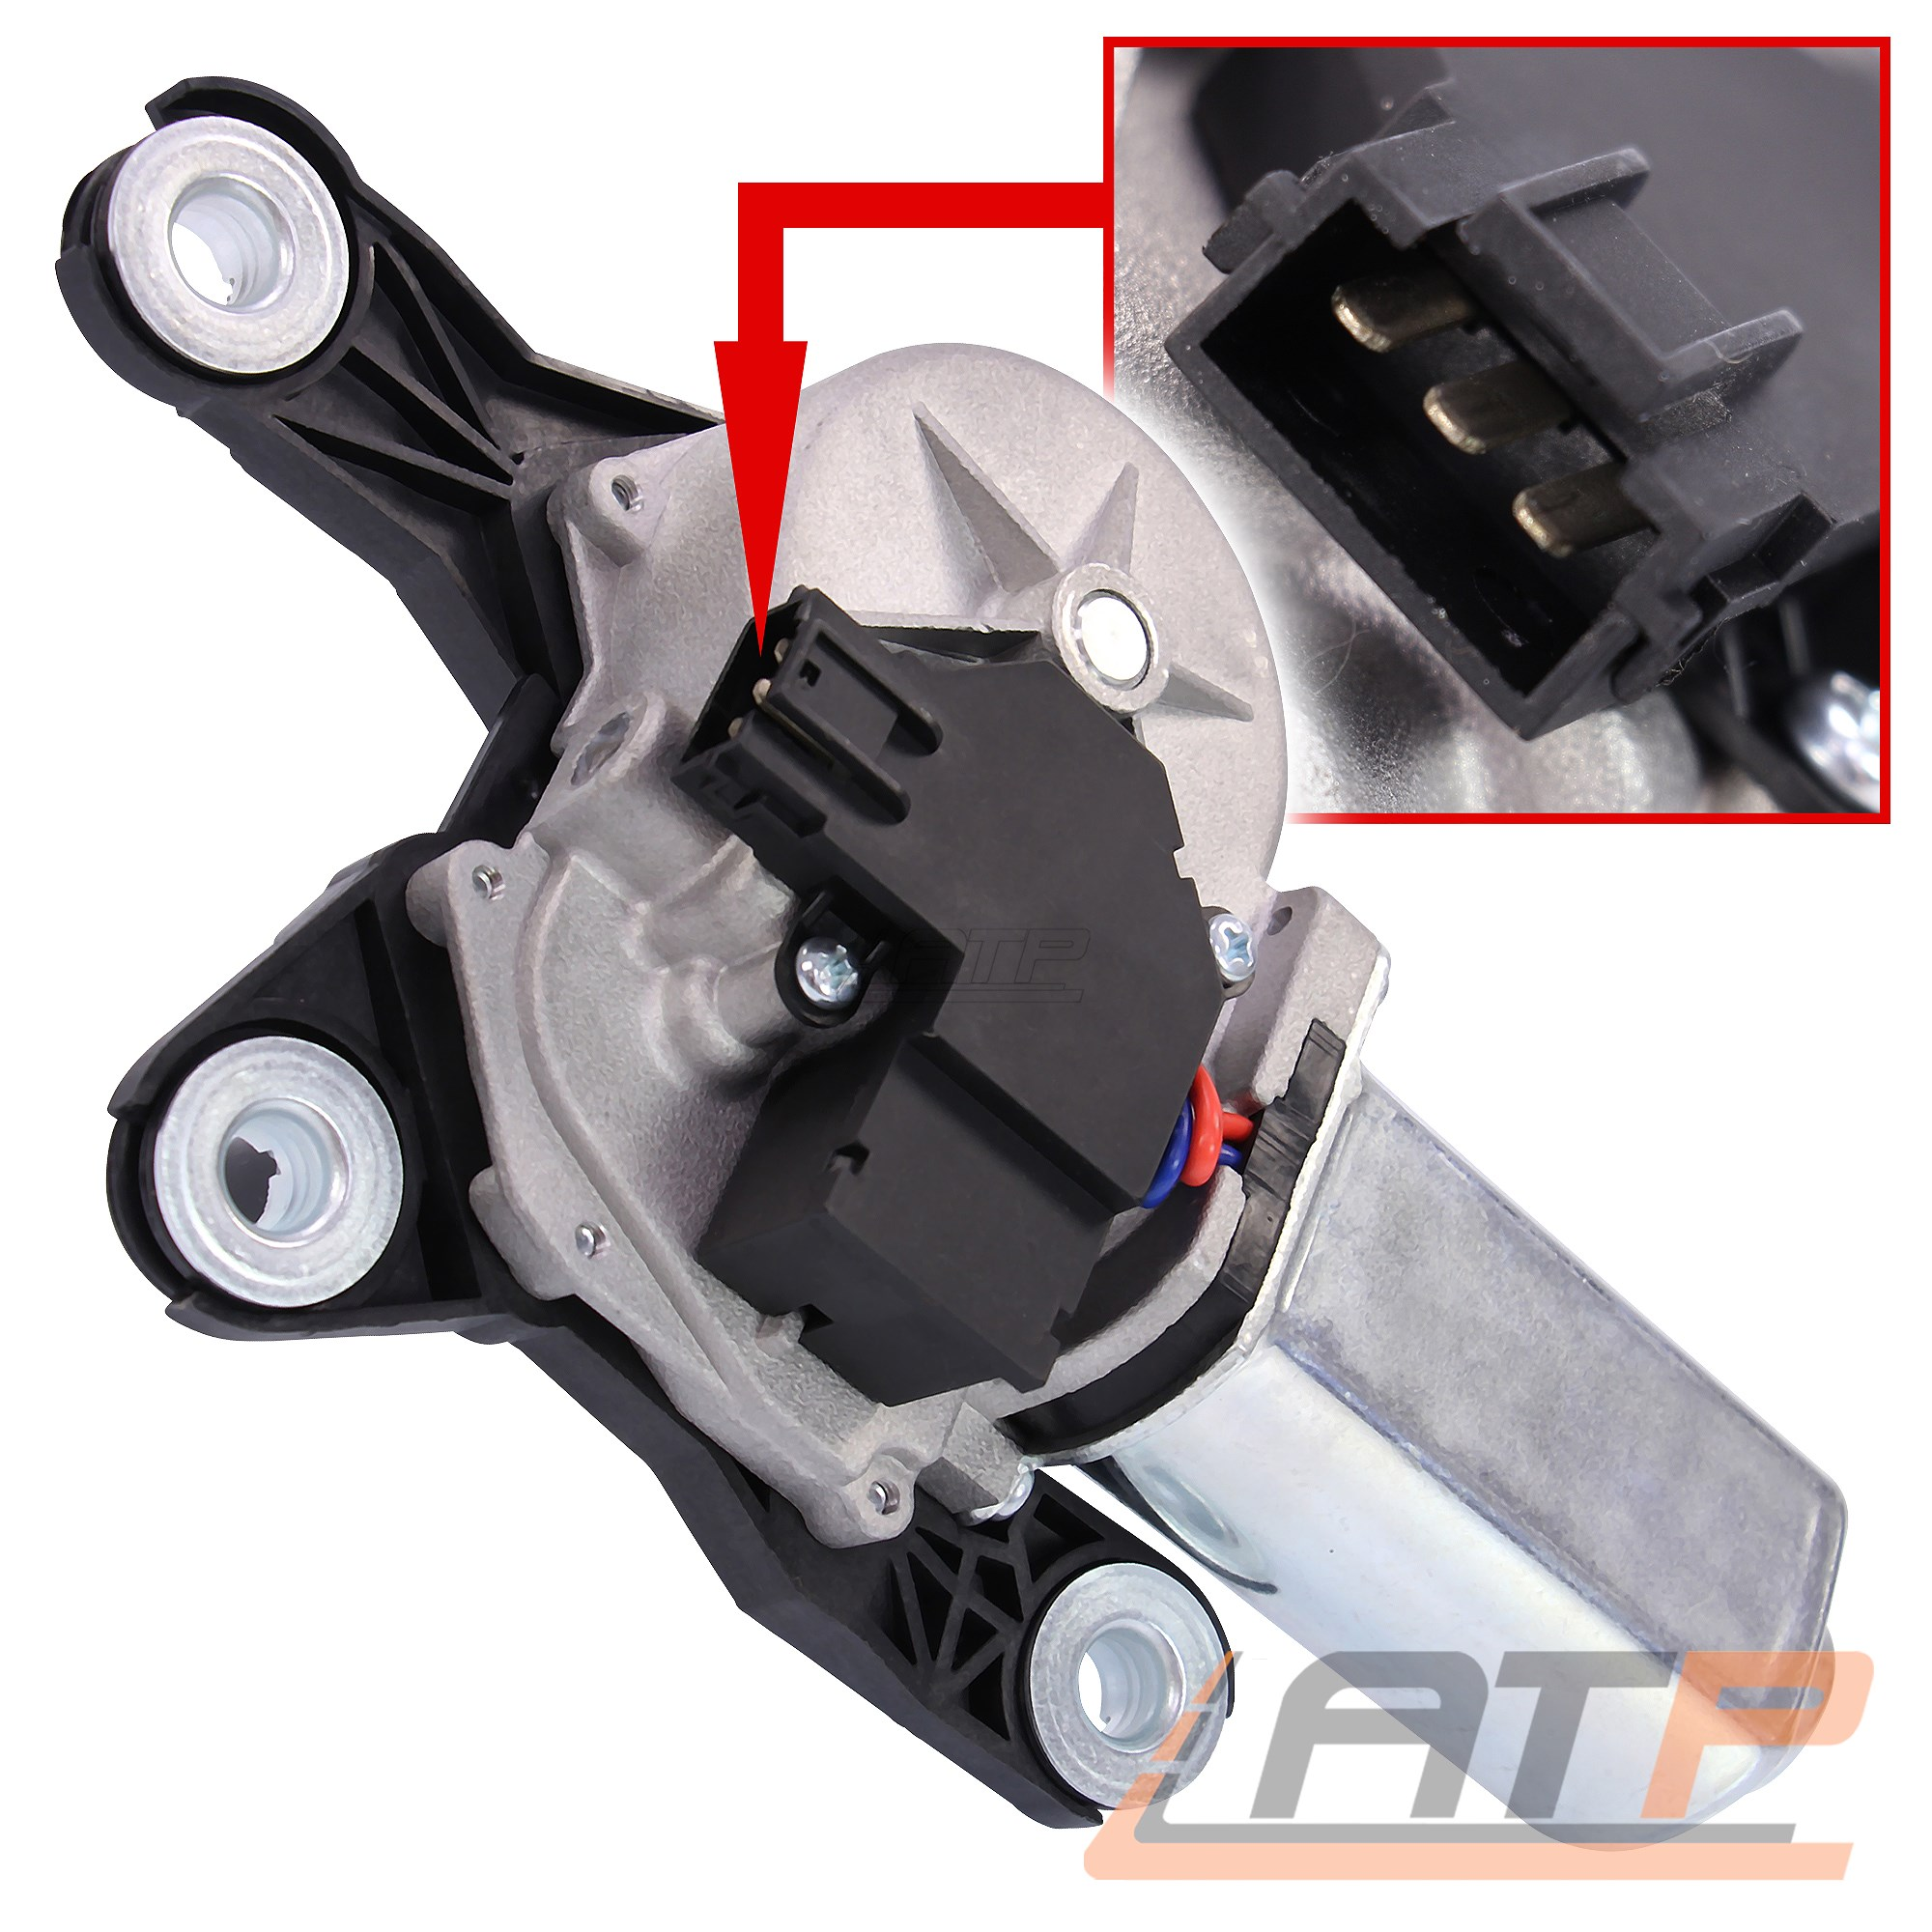 Superior MX Red Gear Shift Lever Yamaha WR 250F  2015-2018 GLH2RD